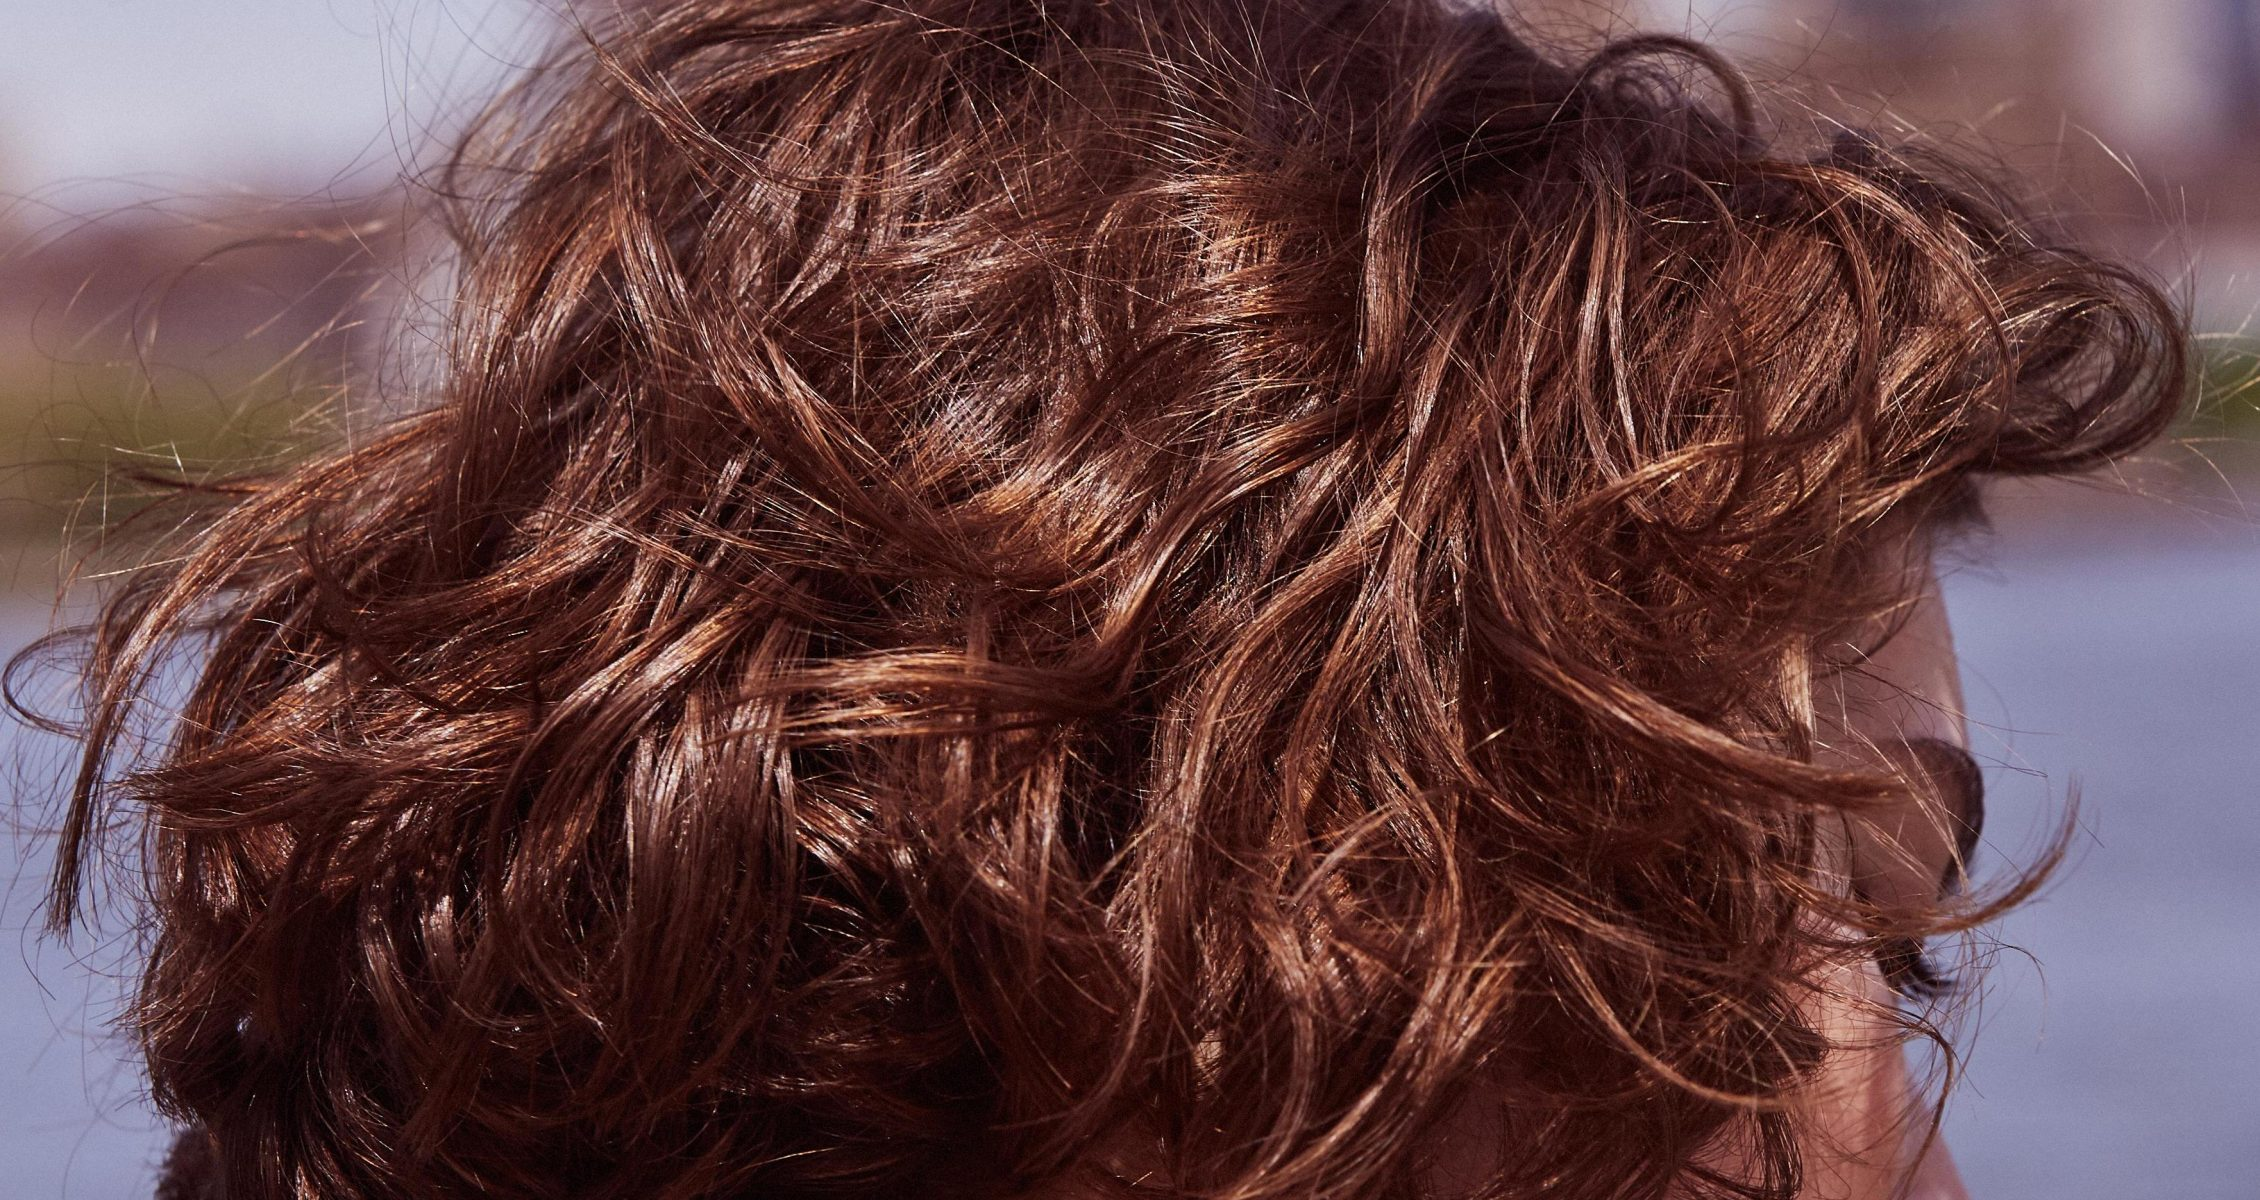 Prose model with short brown, wavy hair close up